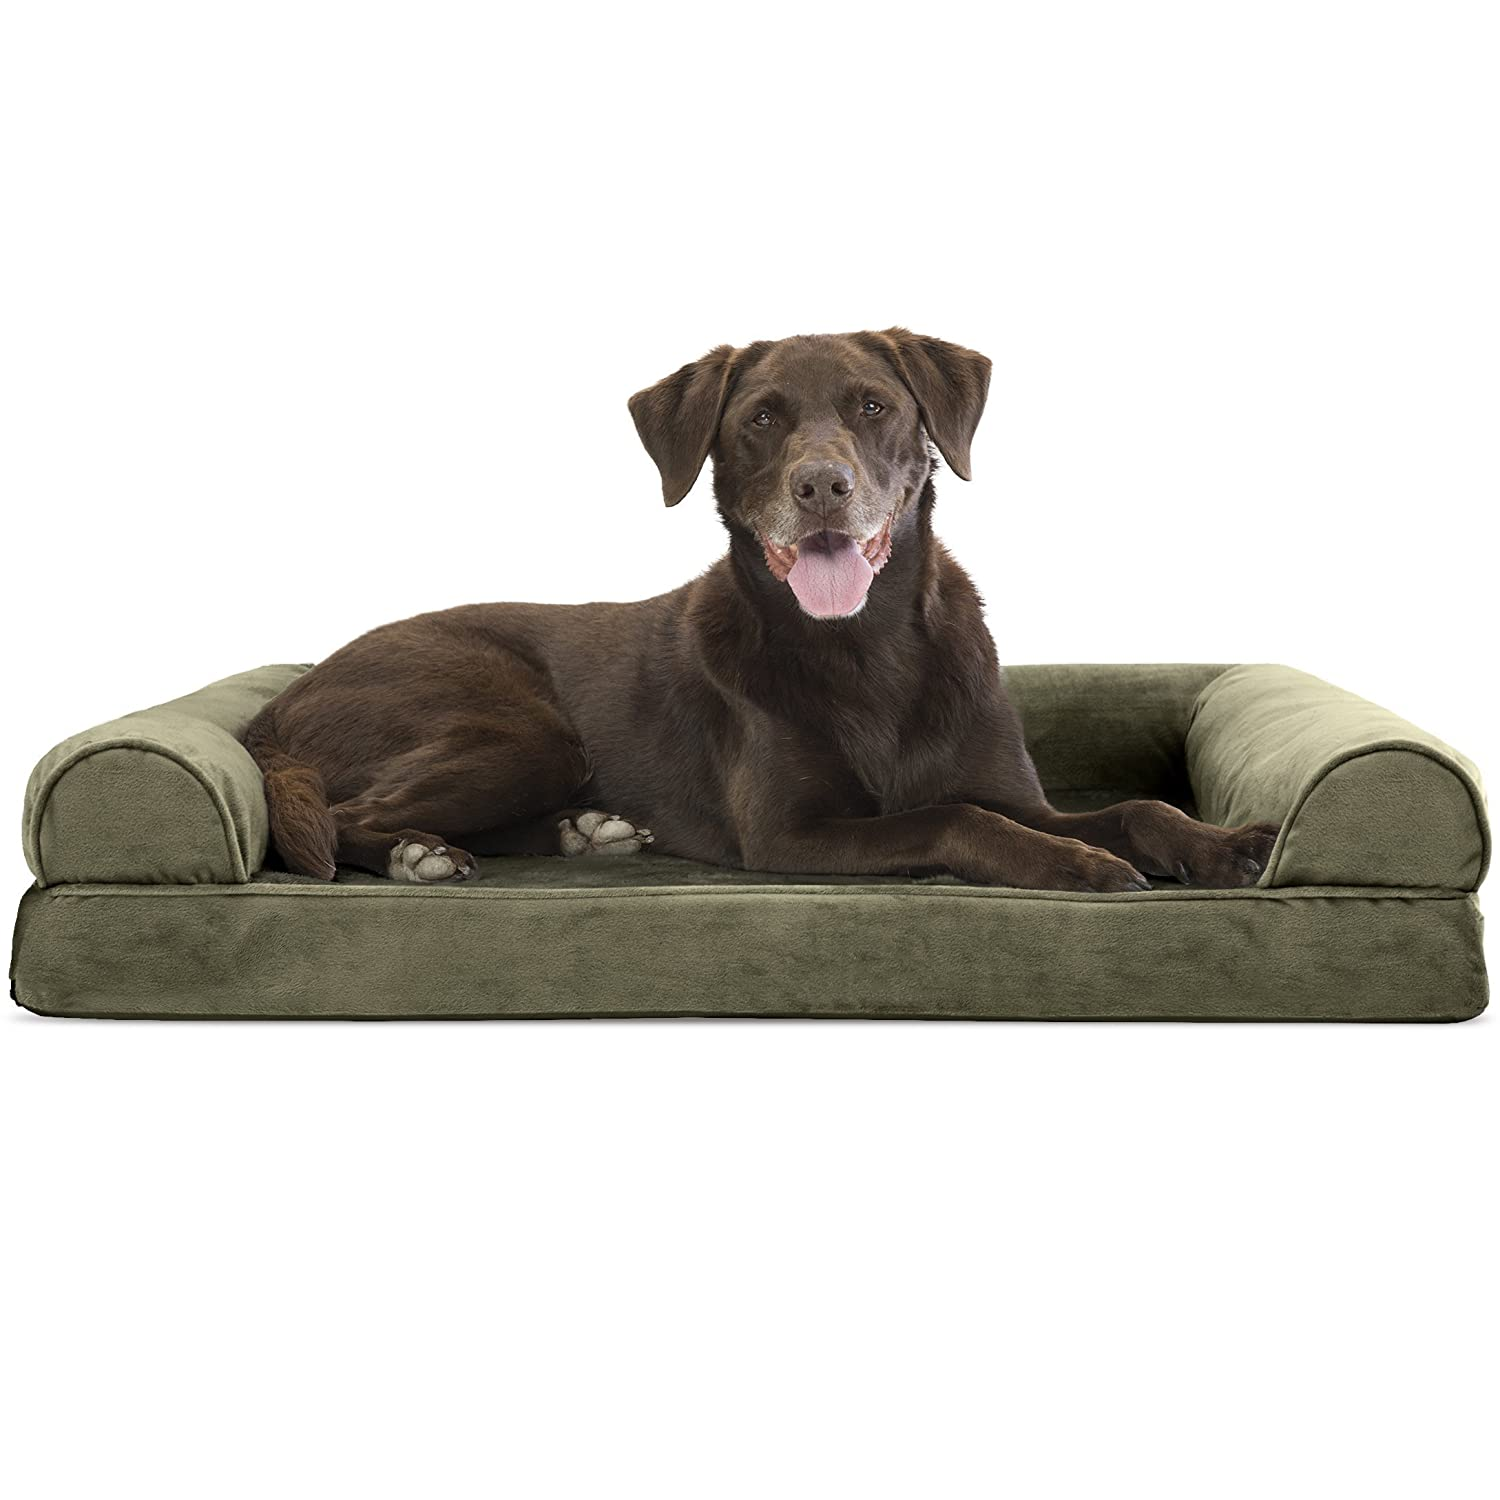 FurHaven Pet Dog Bed   Orthopedic Faux Fur & Velvet Sofa-Style Couch Pet Bed for Dogs & Cats, Dark Sage, Large